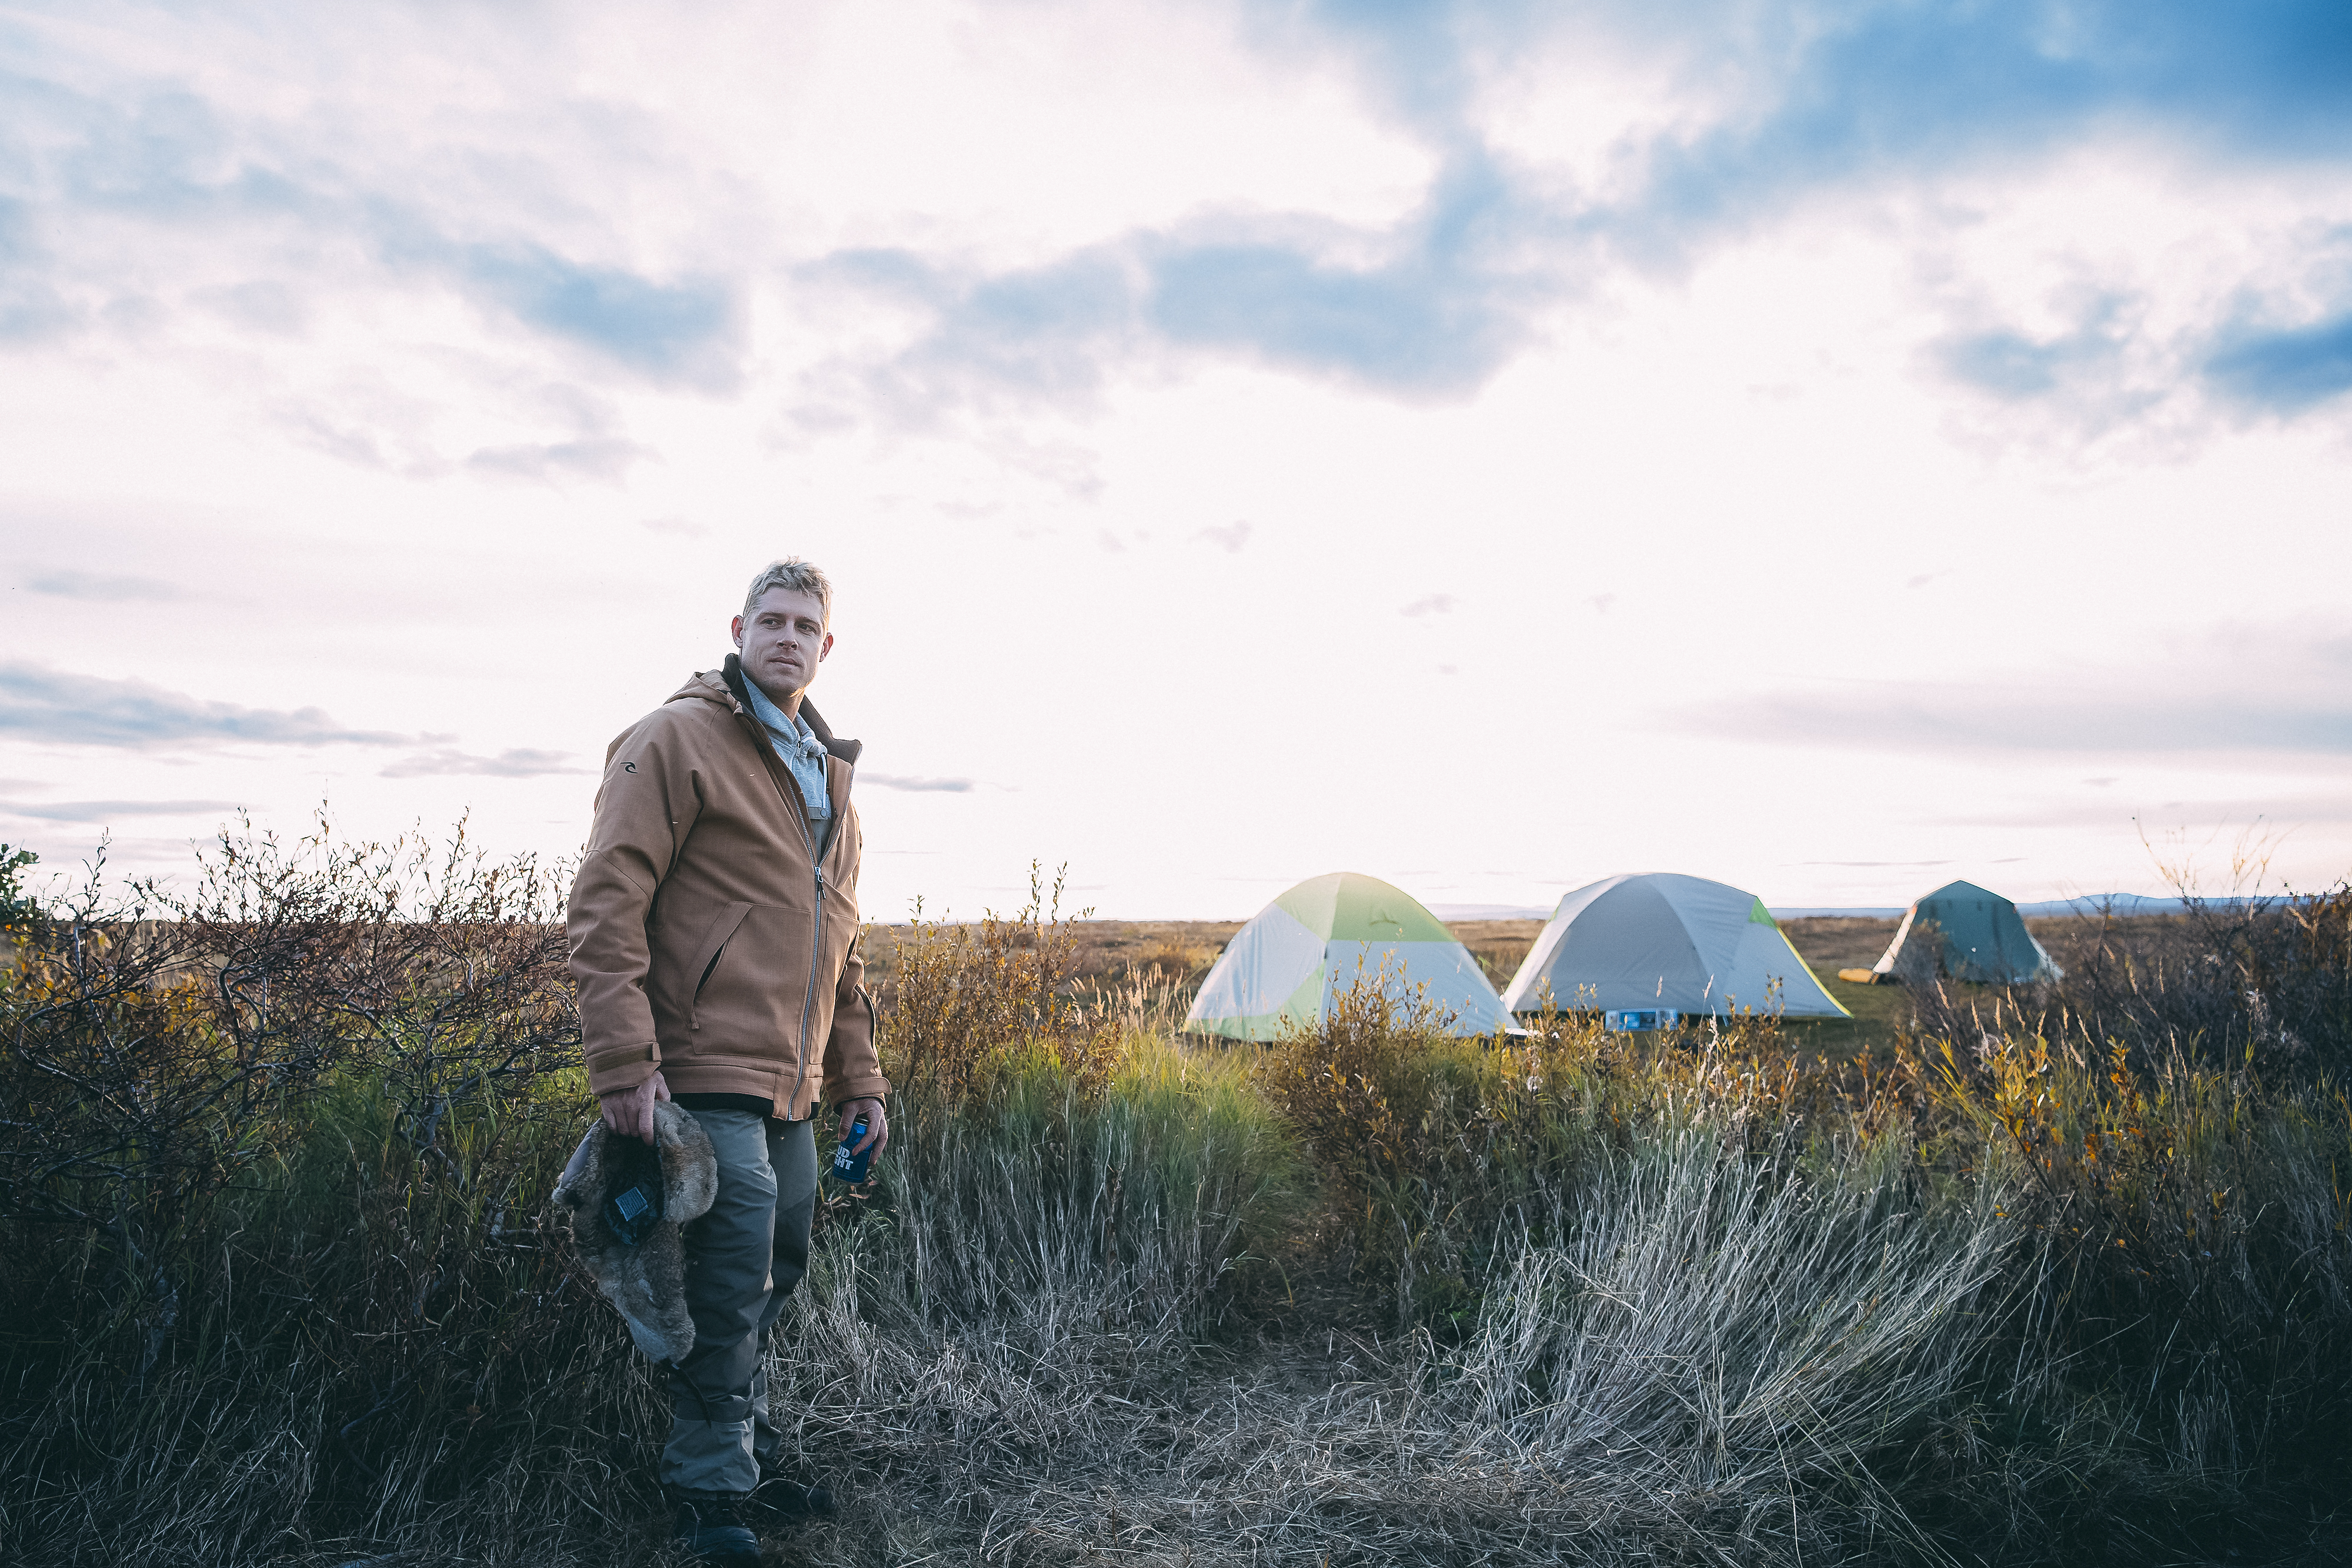 This is Mick's first expedition as Global Ambassador for 'Wild